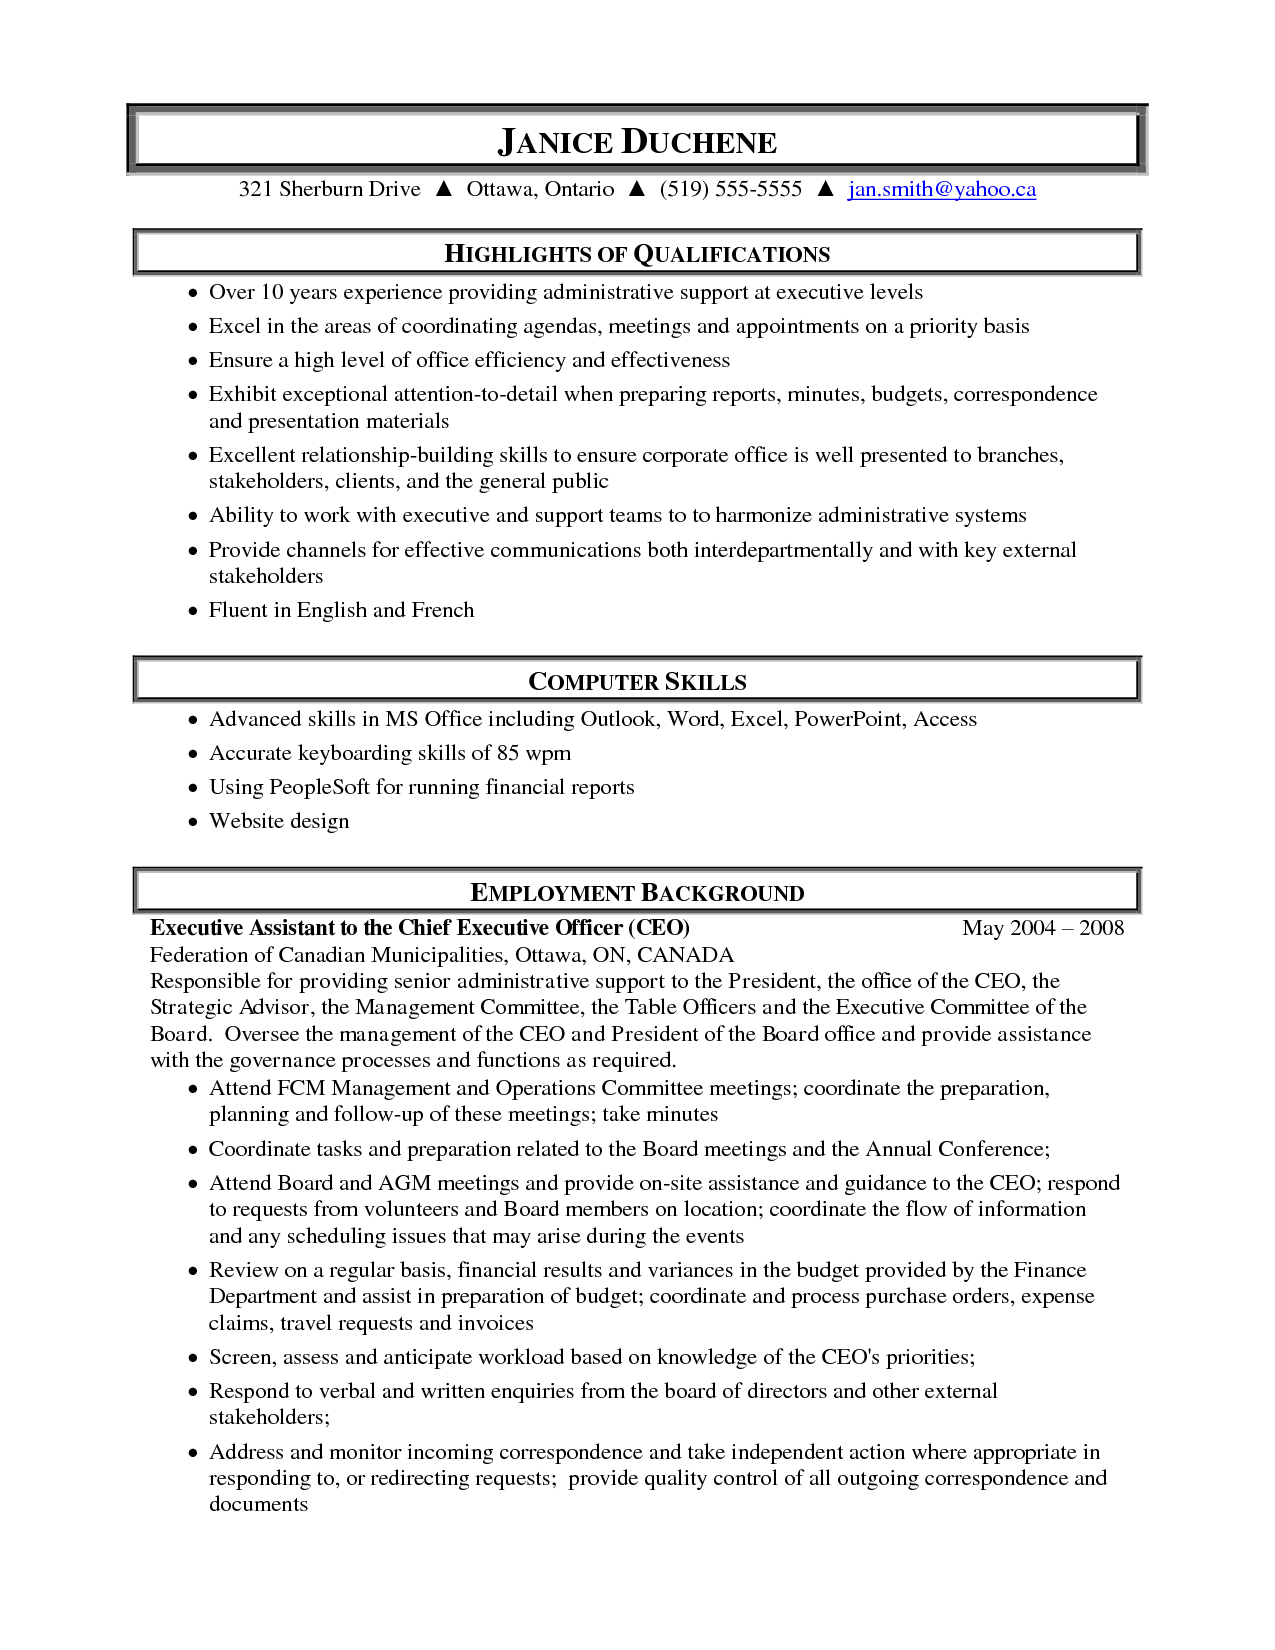 medical administrative assistant resume samples highlight of qualifications - Resume Example Administrative Assistant